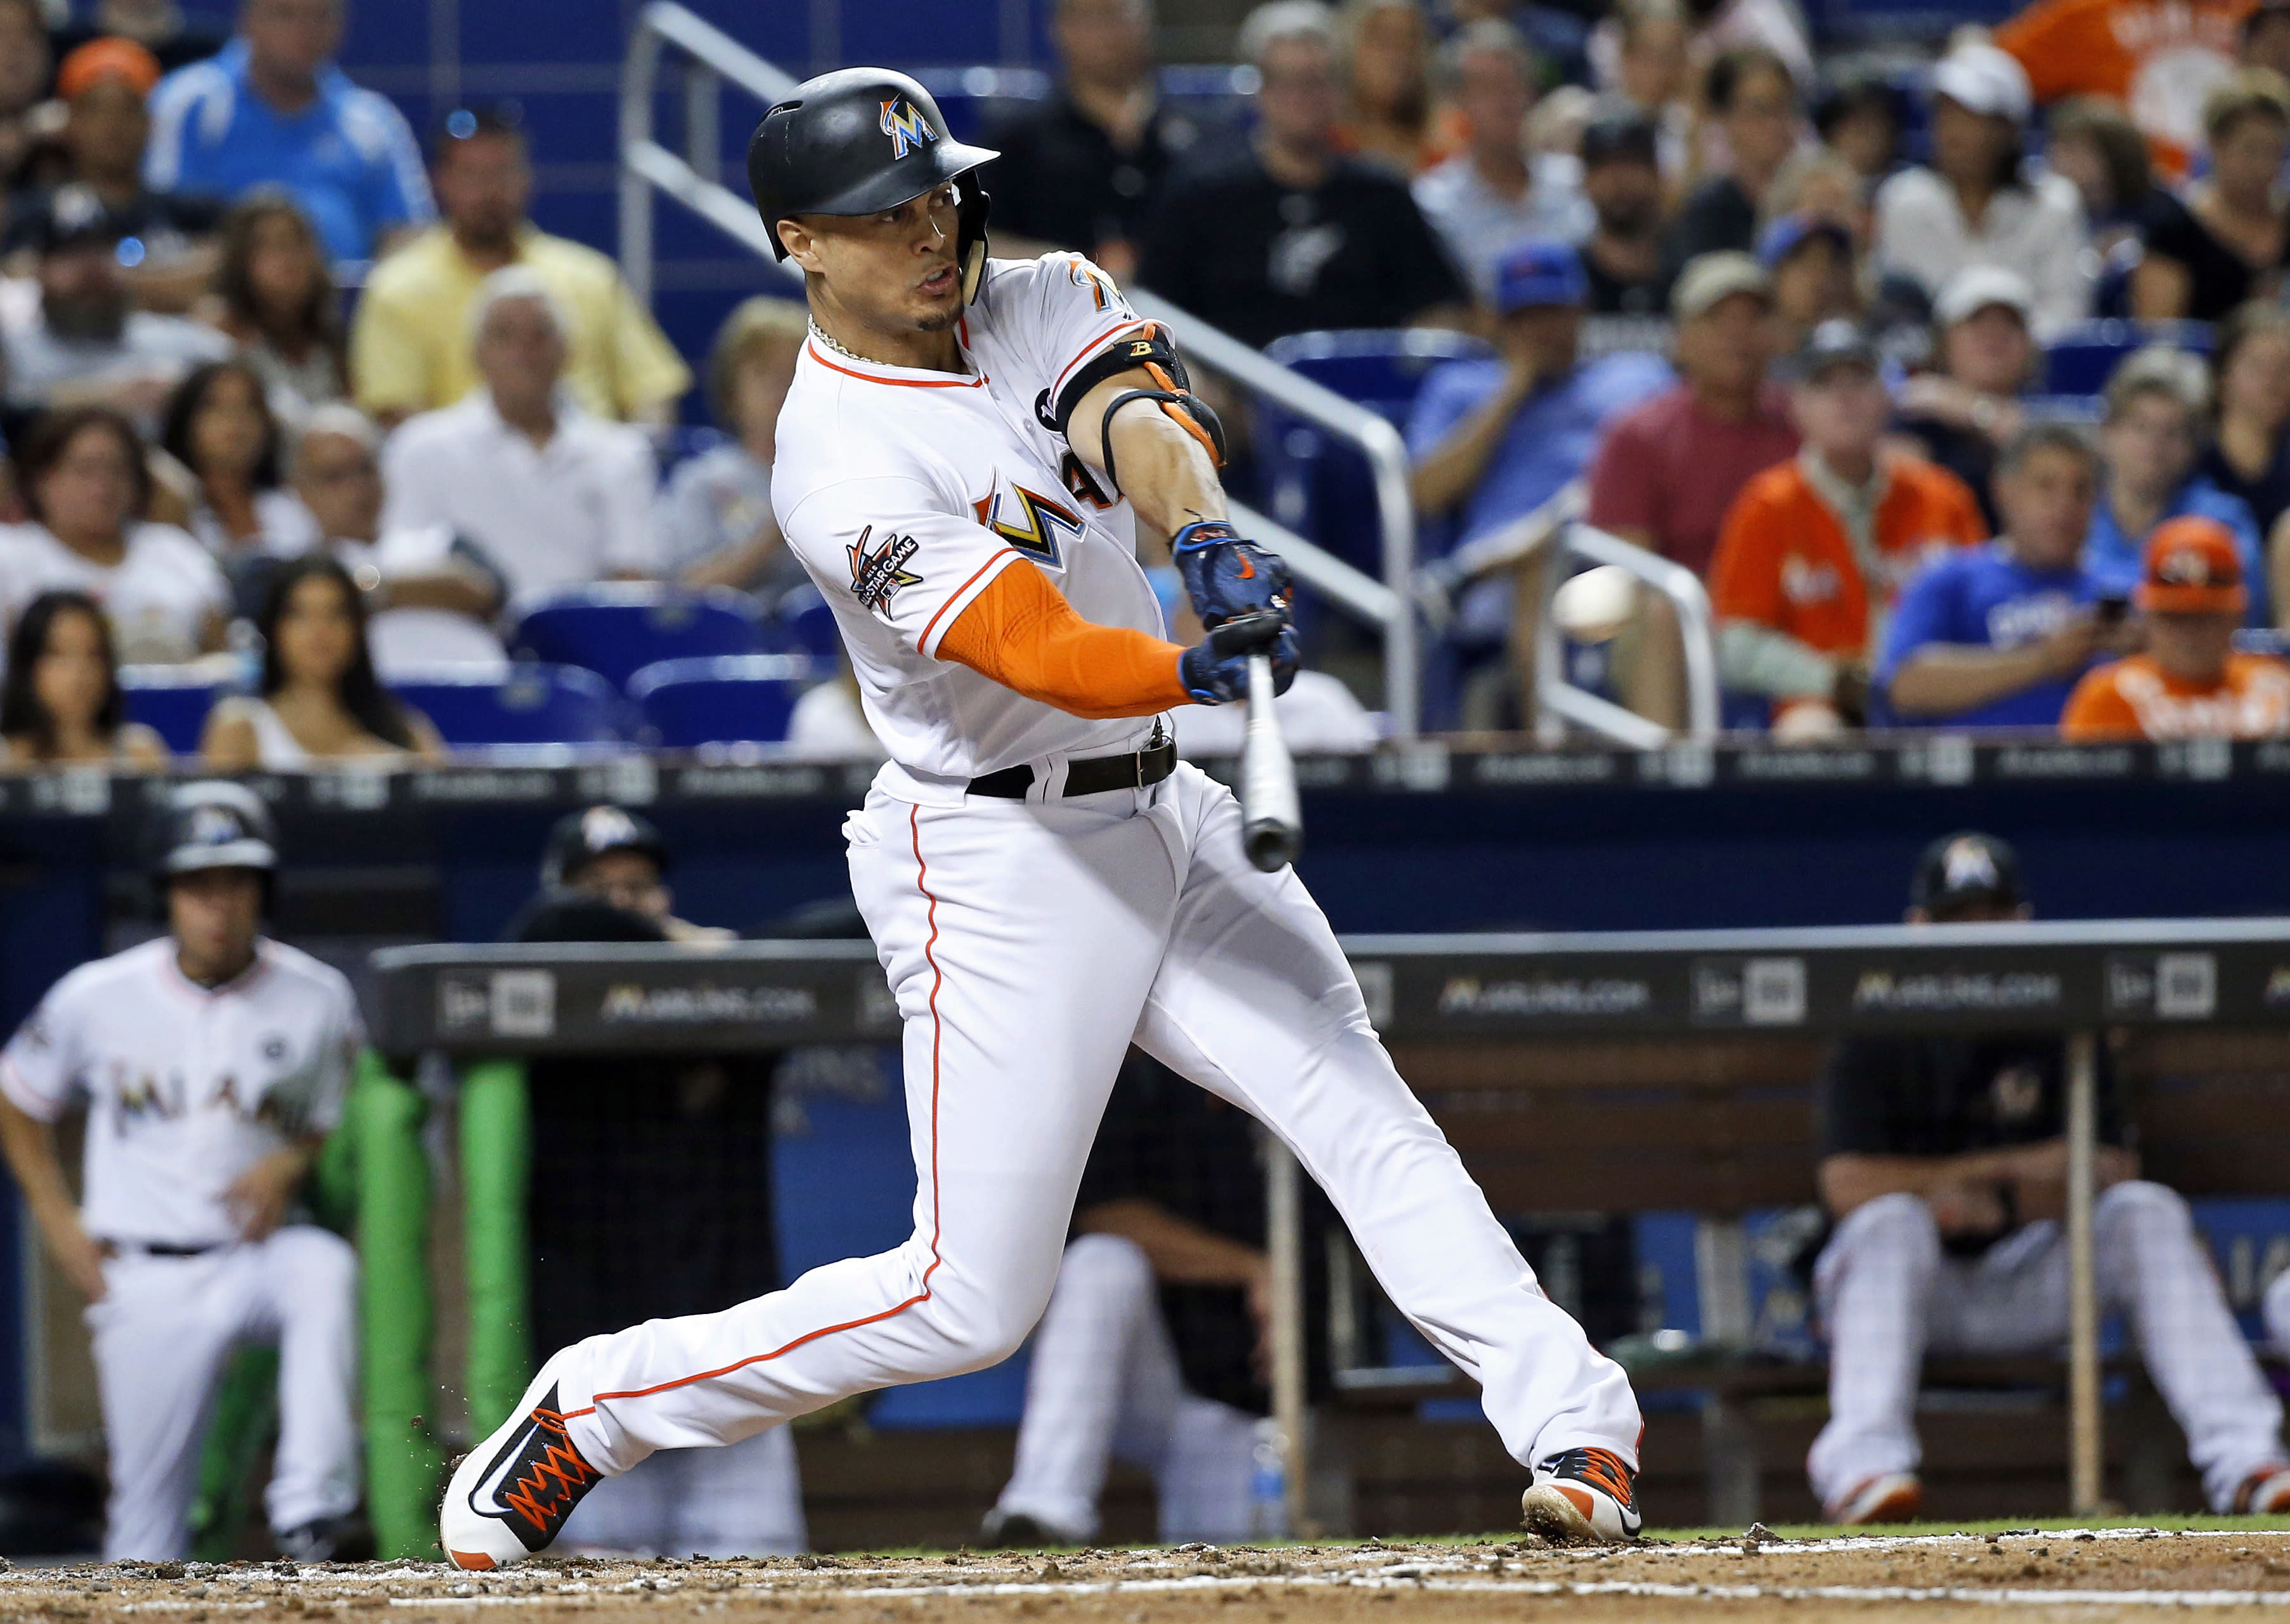 <p> FILE - In this June 23, 2017, file photo, Miami Marlins' Giancarlo Stanton hits a home run in the third inning of a baseball game against the Chicago Cubs in Miami. A person familiar with the negotiations says the New York Yankees and Miami Marlins are working on a trade that would send slugger Giancarlo Stanton to New York and infielder Starlin Castro to Miami. The person spoke to The Associated Press on condition of anonymity Saturday, Dec. 9, 2017, because no agreement has been completed. (AP Photo/Wilfredo Lee, File) </p>